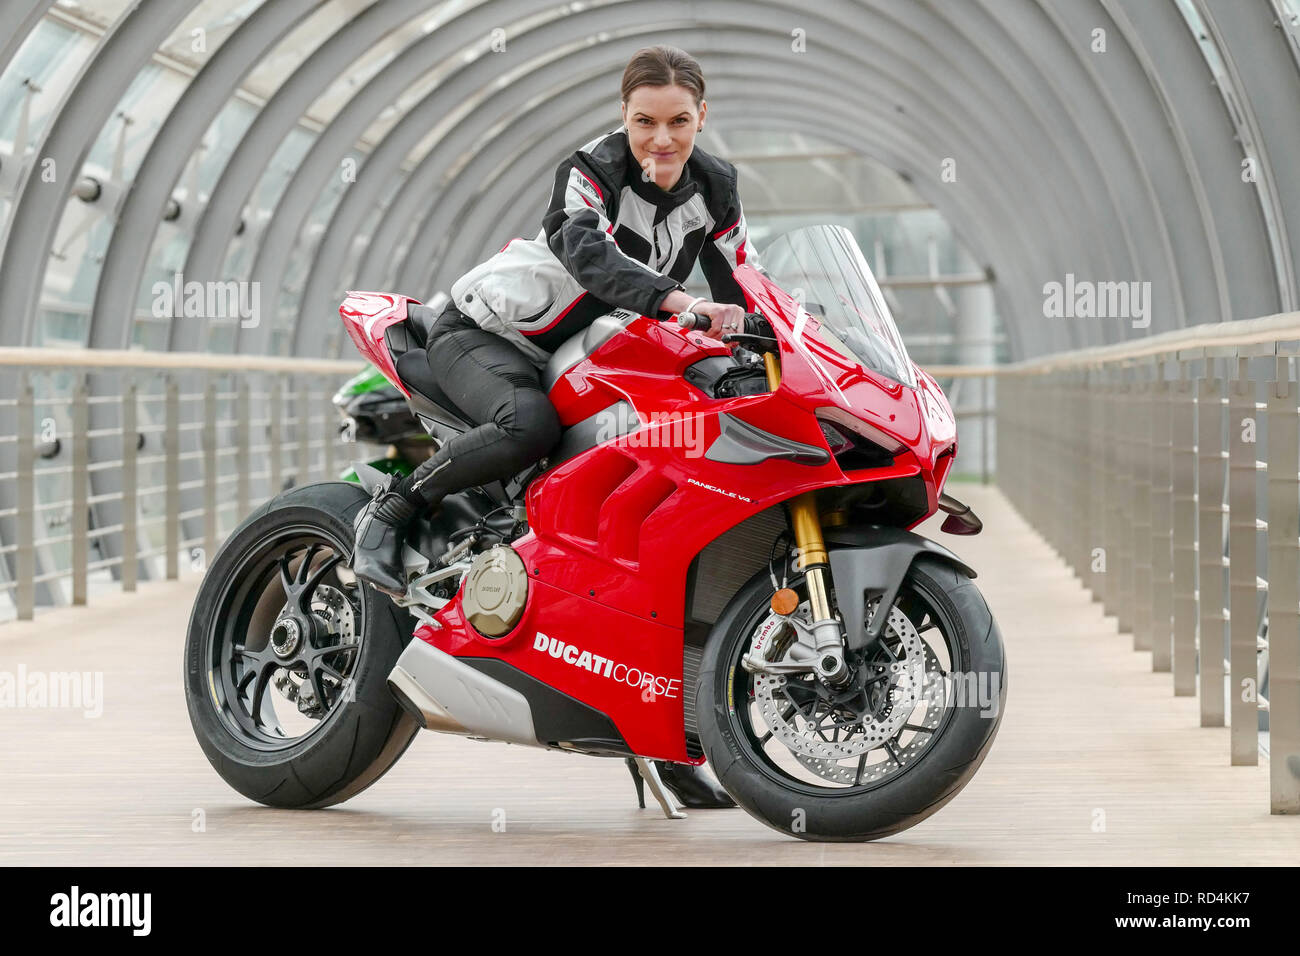 Ducati Corse Stock Photos Ducati Corse Stock Images Alamy